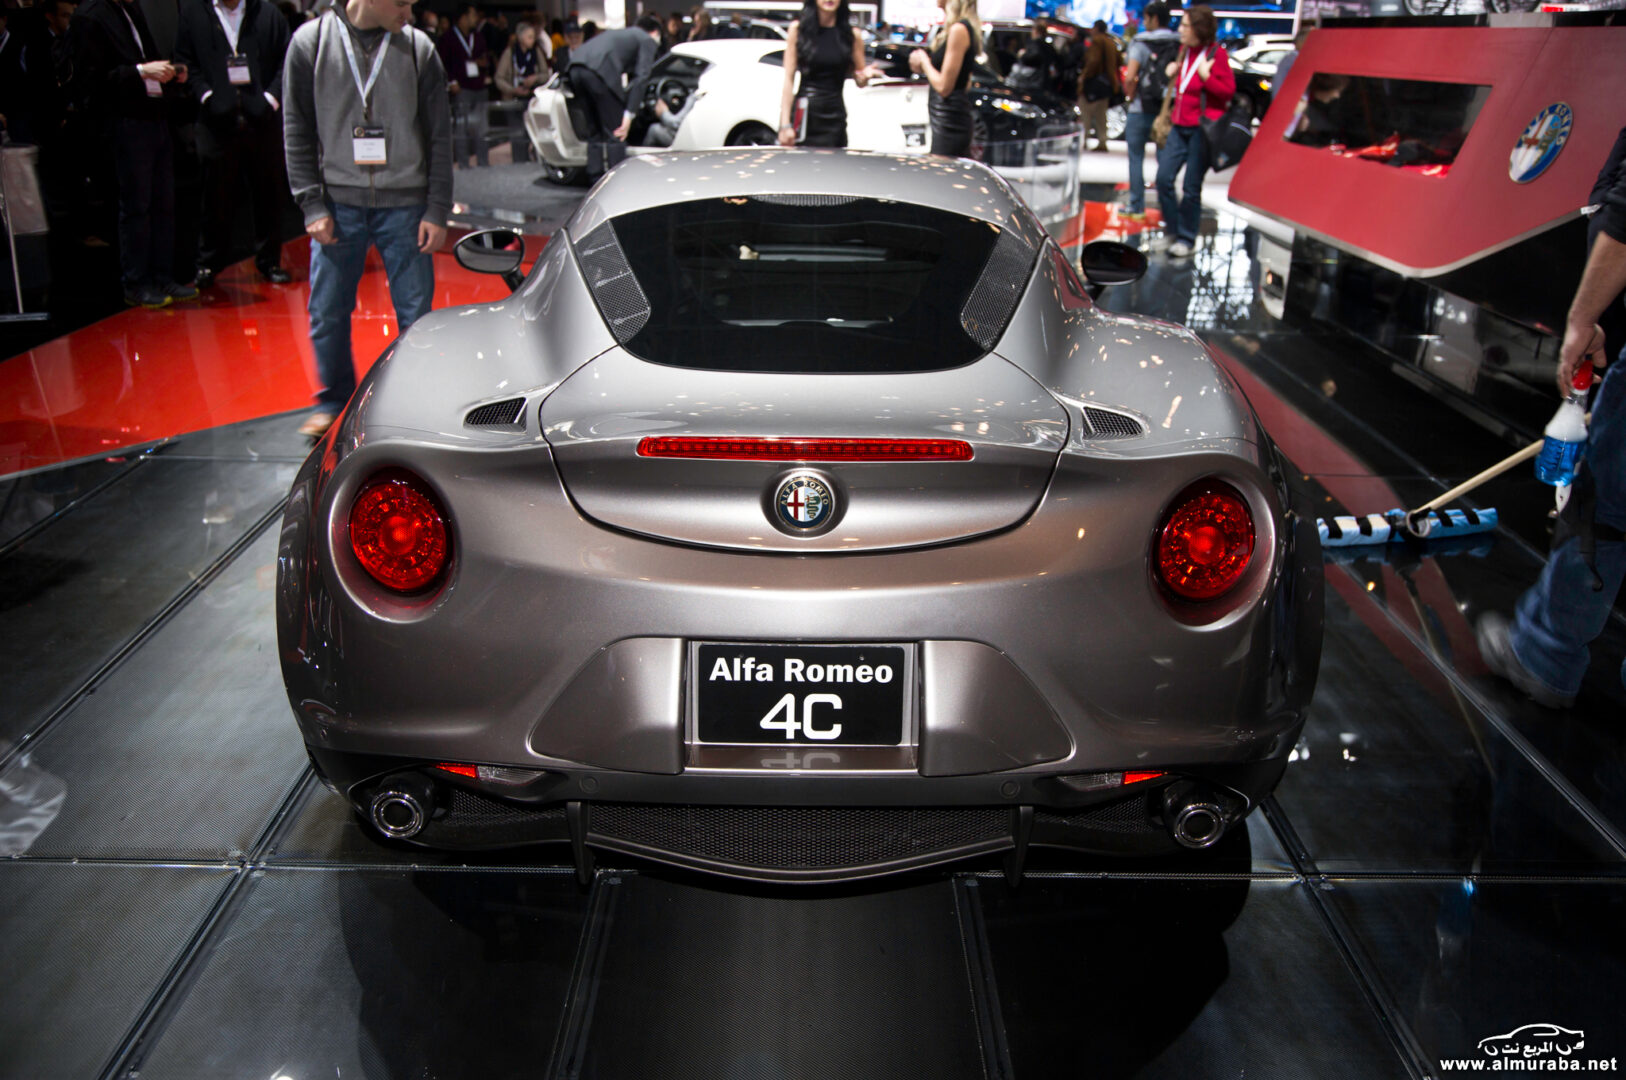 http---image.motortrend.com-f-wot-1404_2015_alfa_romeo_4c_launch_edition_arrives_this_june-72848097-2015-Alfa-Romeo-4C-Launch-Edition-rear-end-02